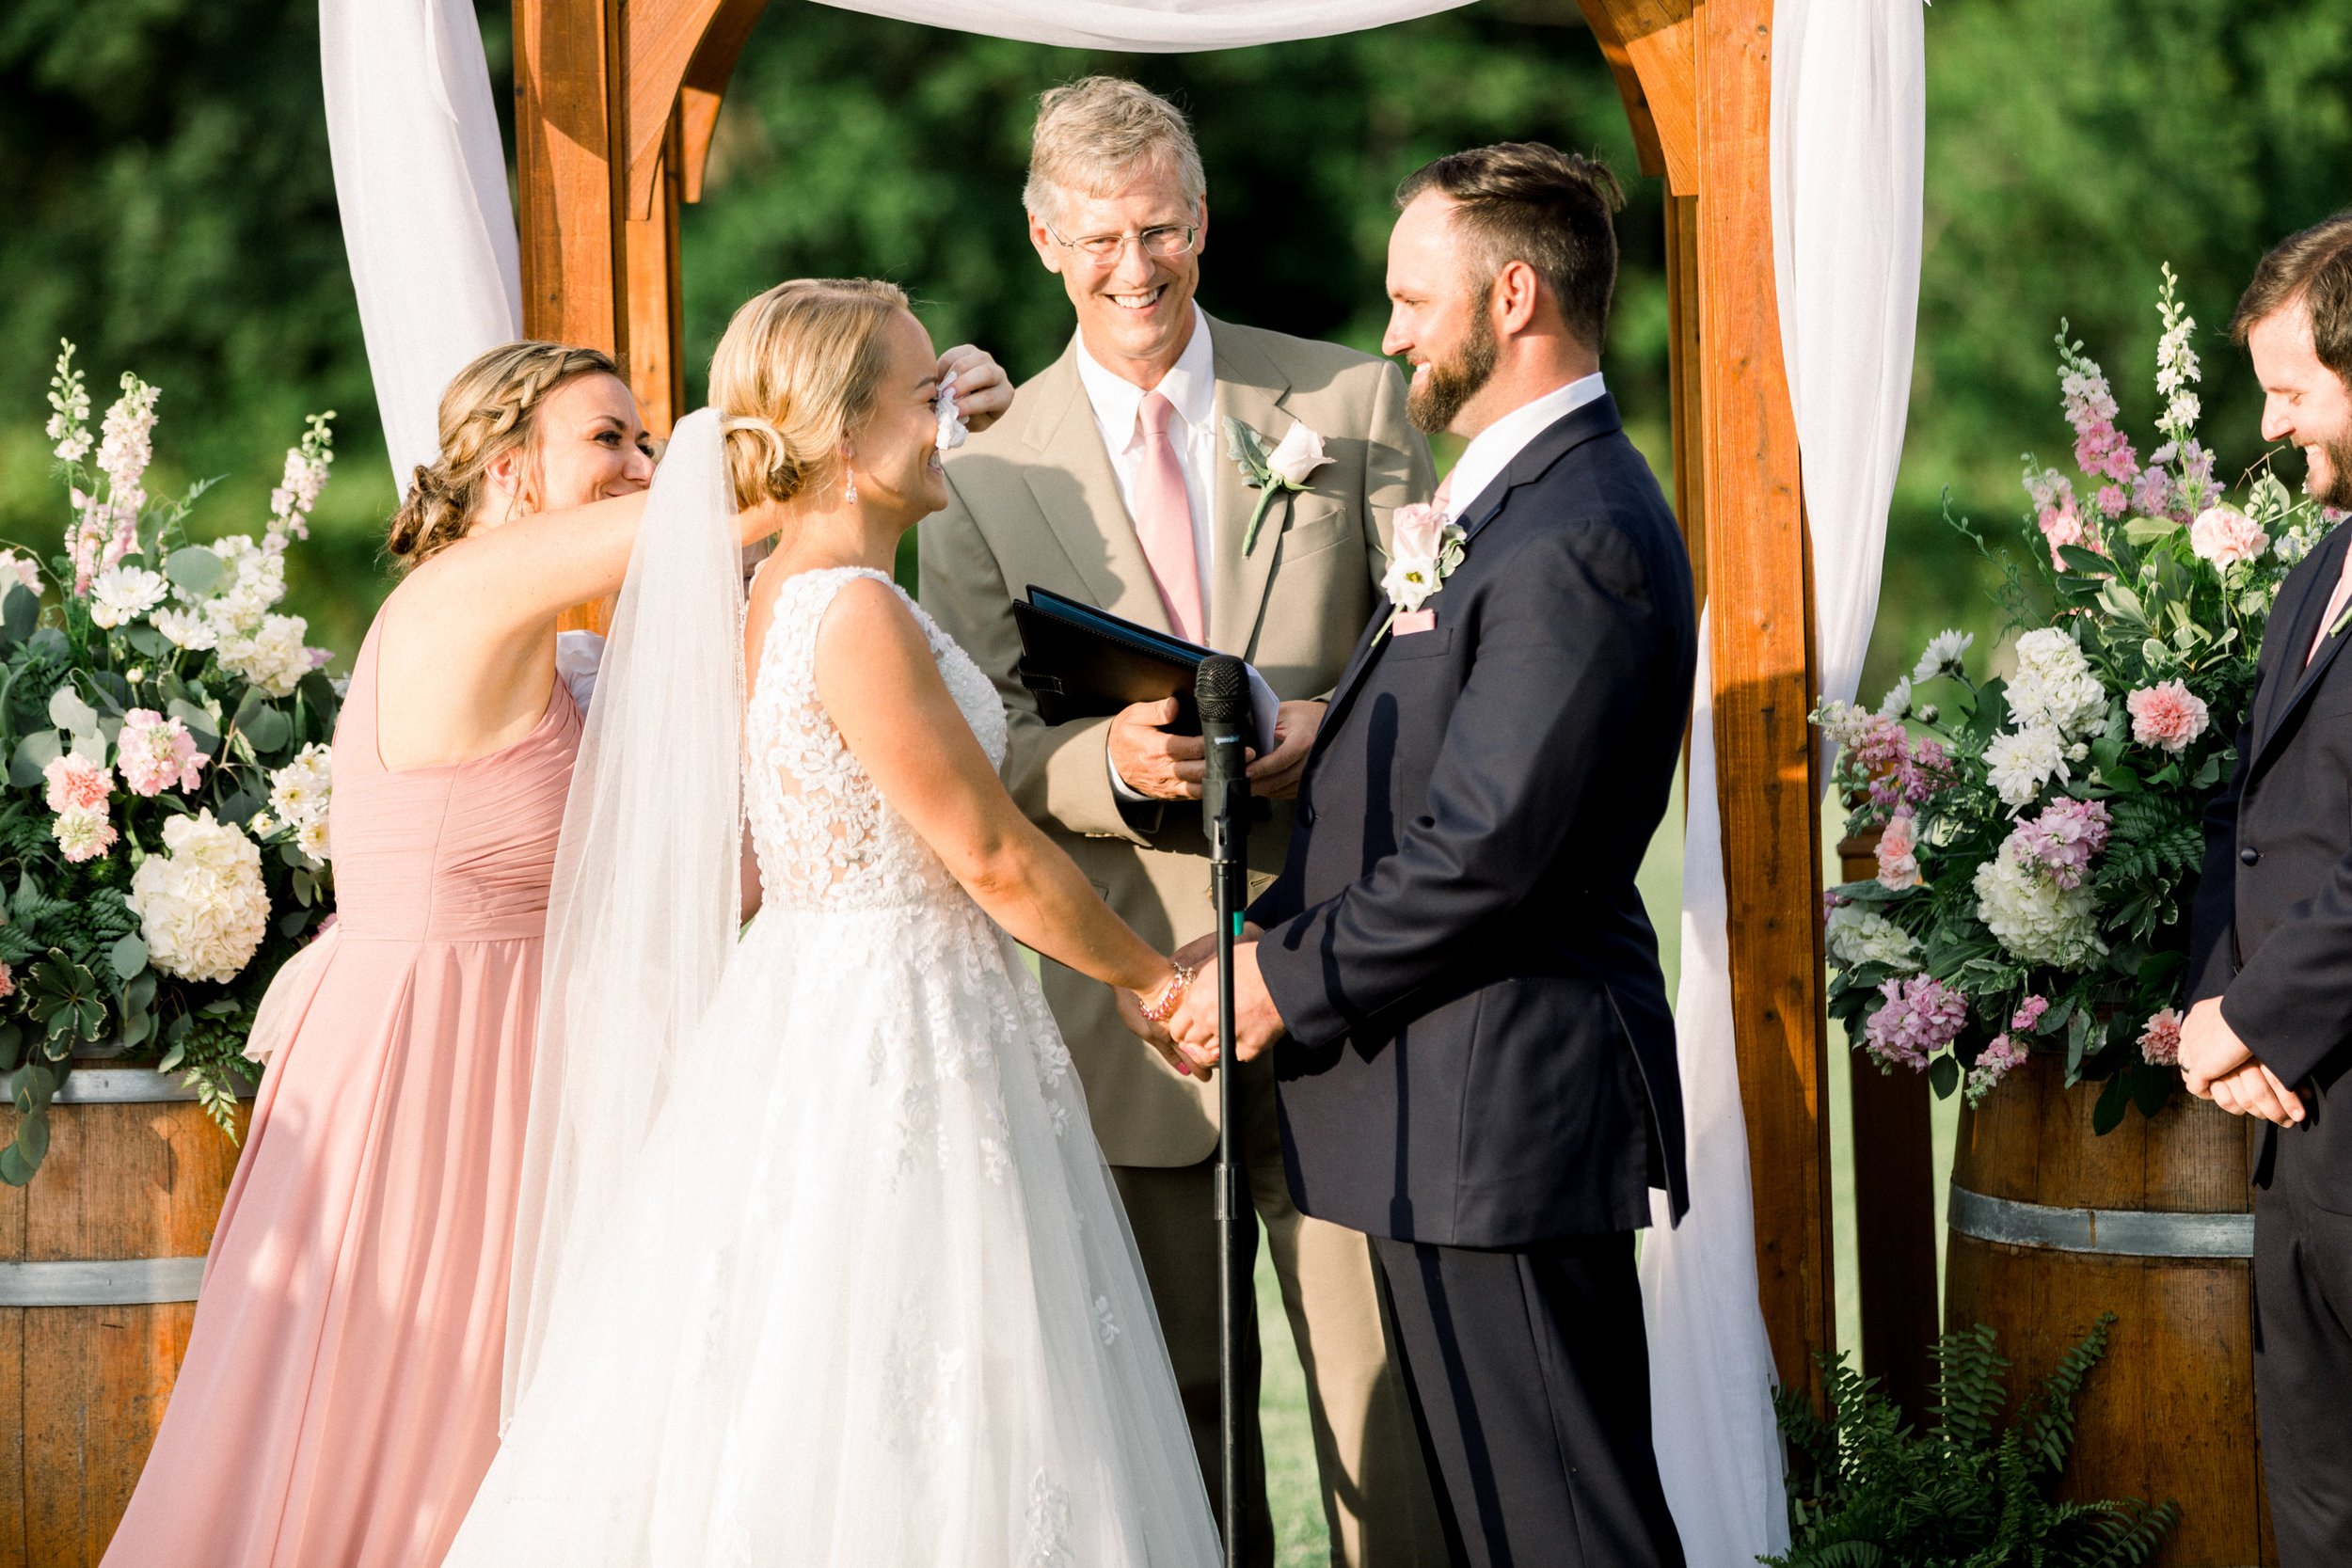 Molly + Dan wedding 6-7-19 (597 of 916).jpg